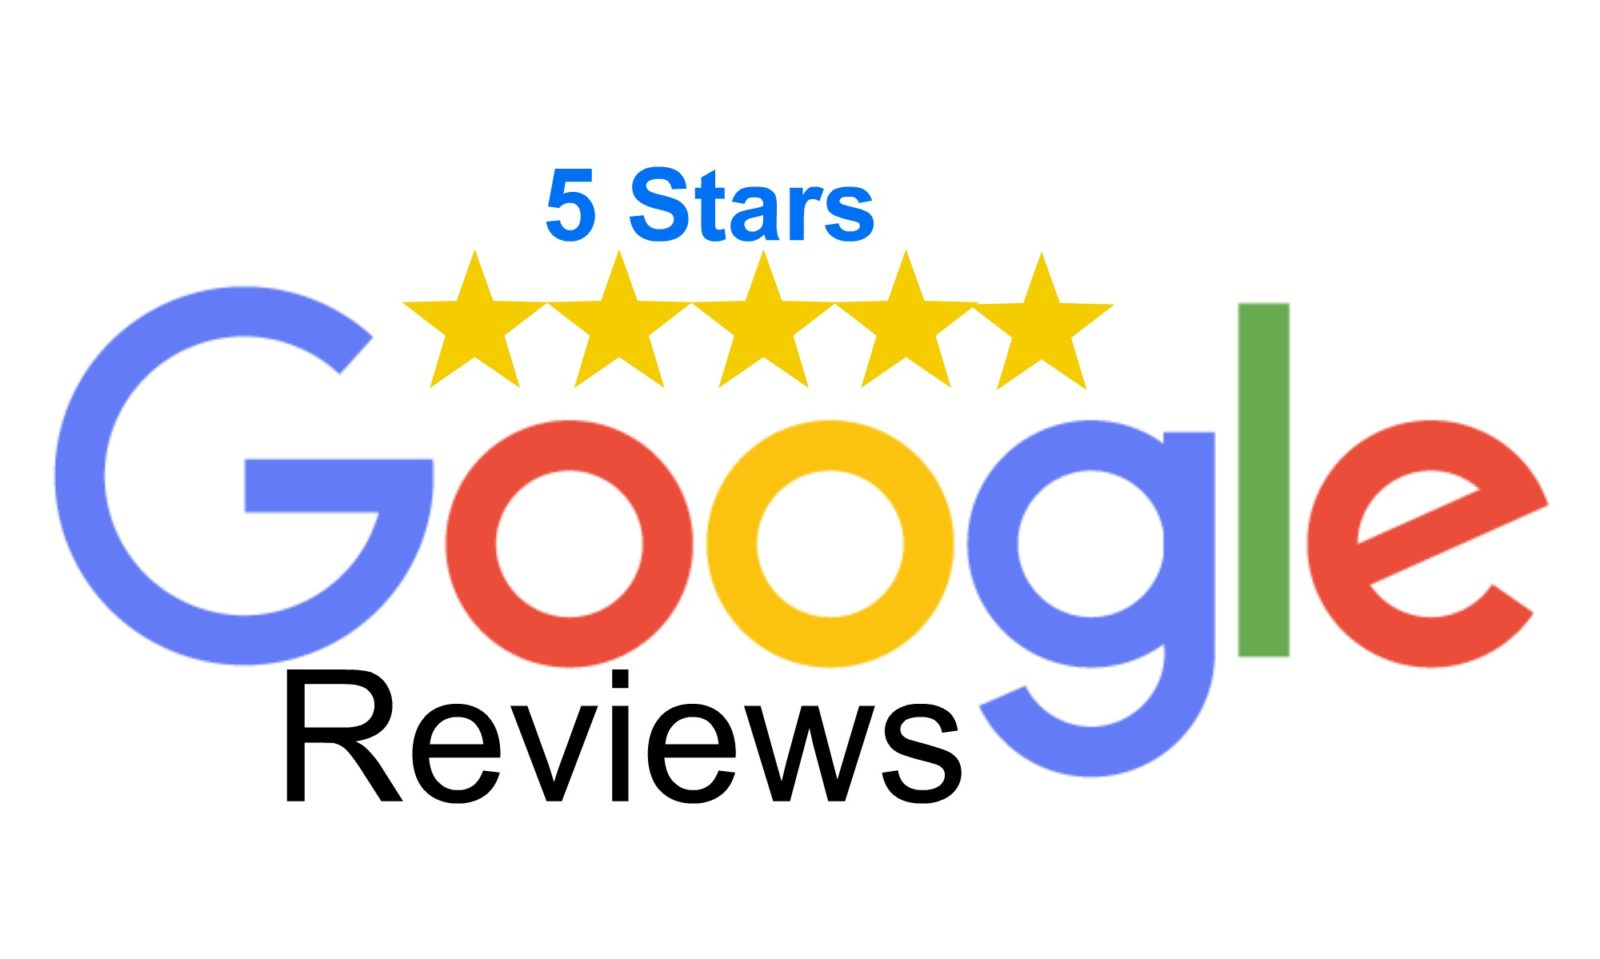 IF CITY Reviews